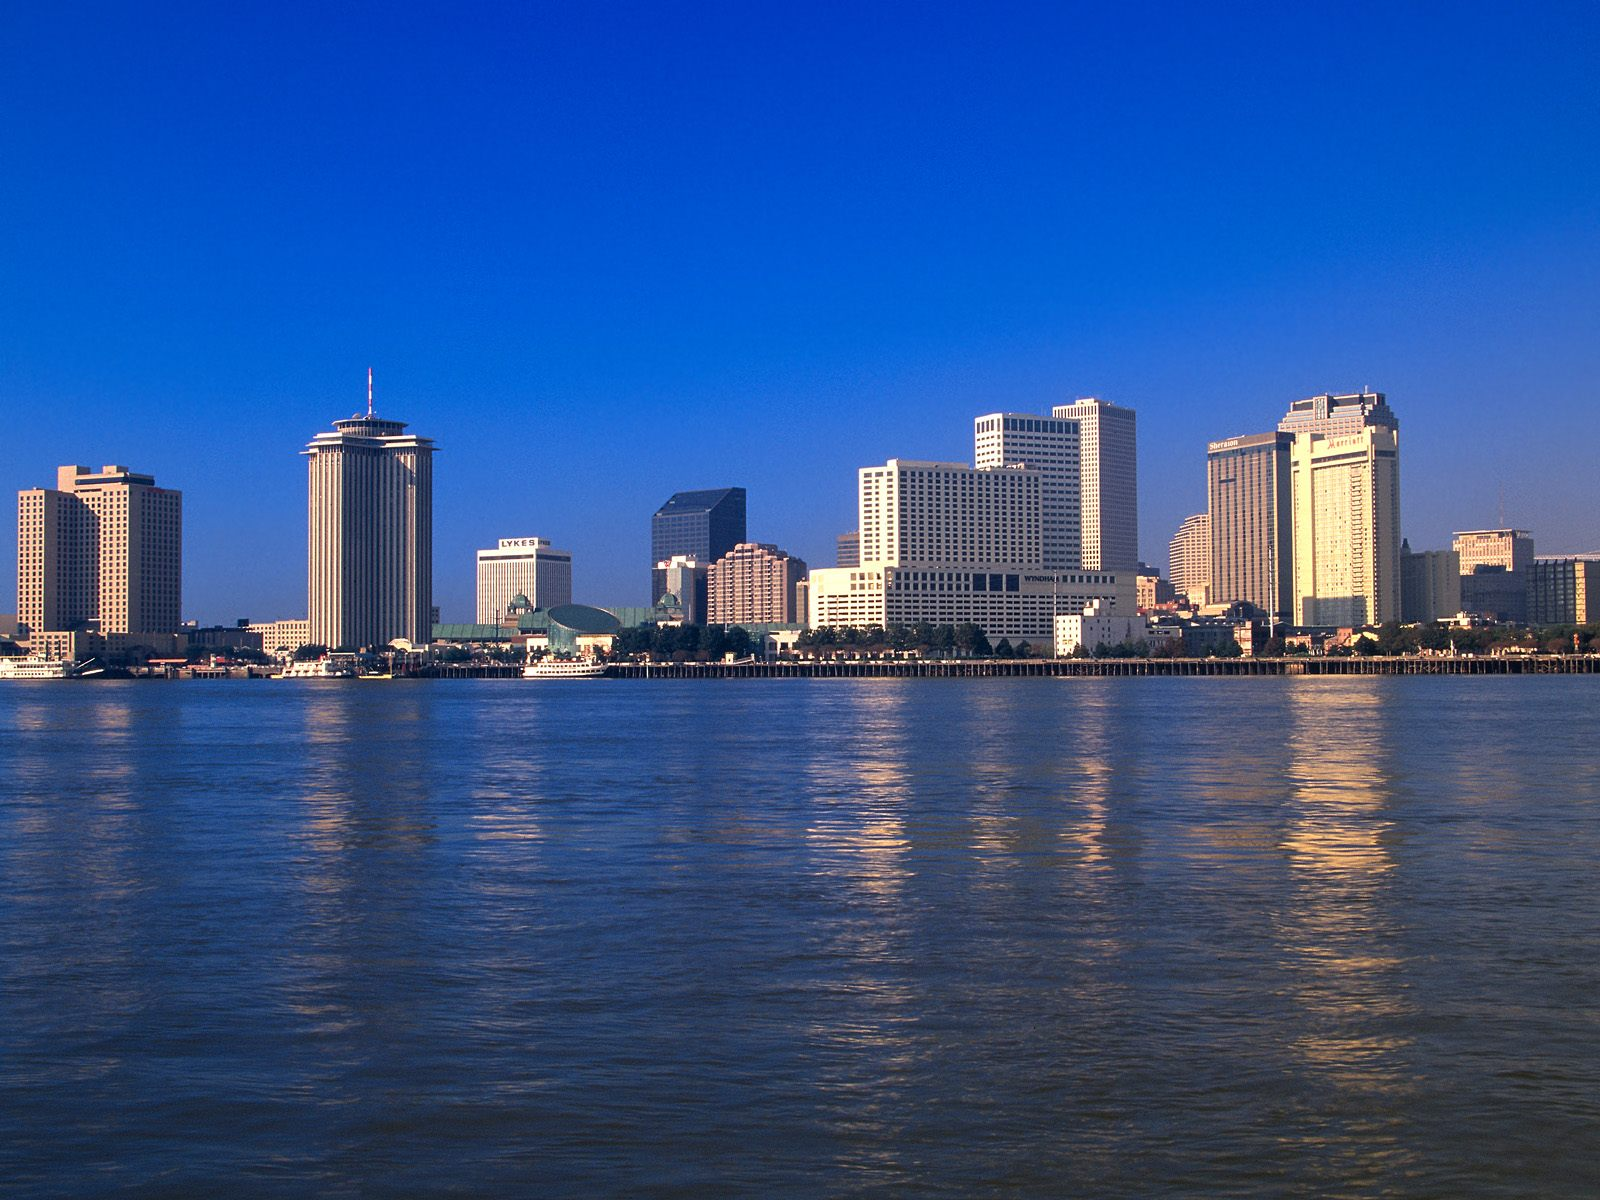 http://2.bp.blogspot.com/-tj8a7k5MgLA/TefMroN9g5I/AAAAAAAAAlM/90_YgV3BCXQ/s1600/Reflections+on+the+Mississippi%252C+New+Orleans%252C+Louisiana.jpg